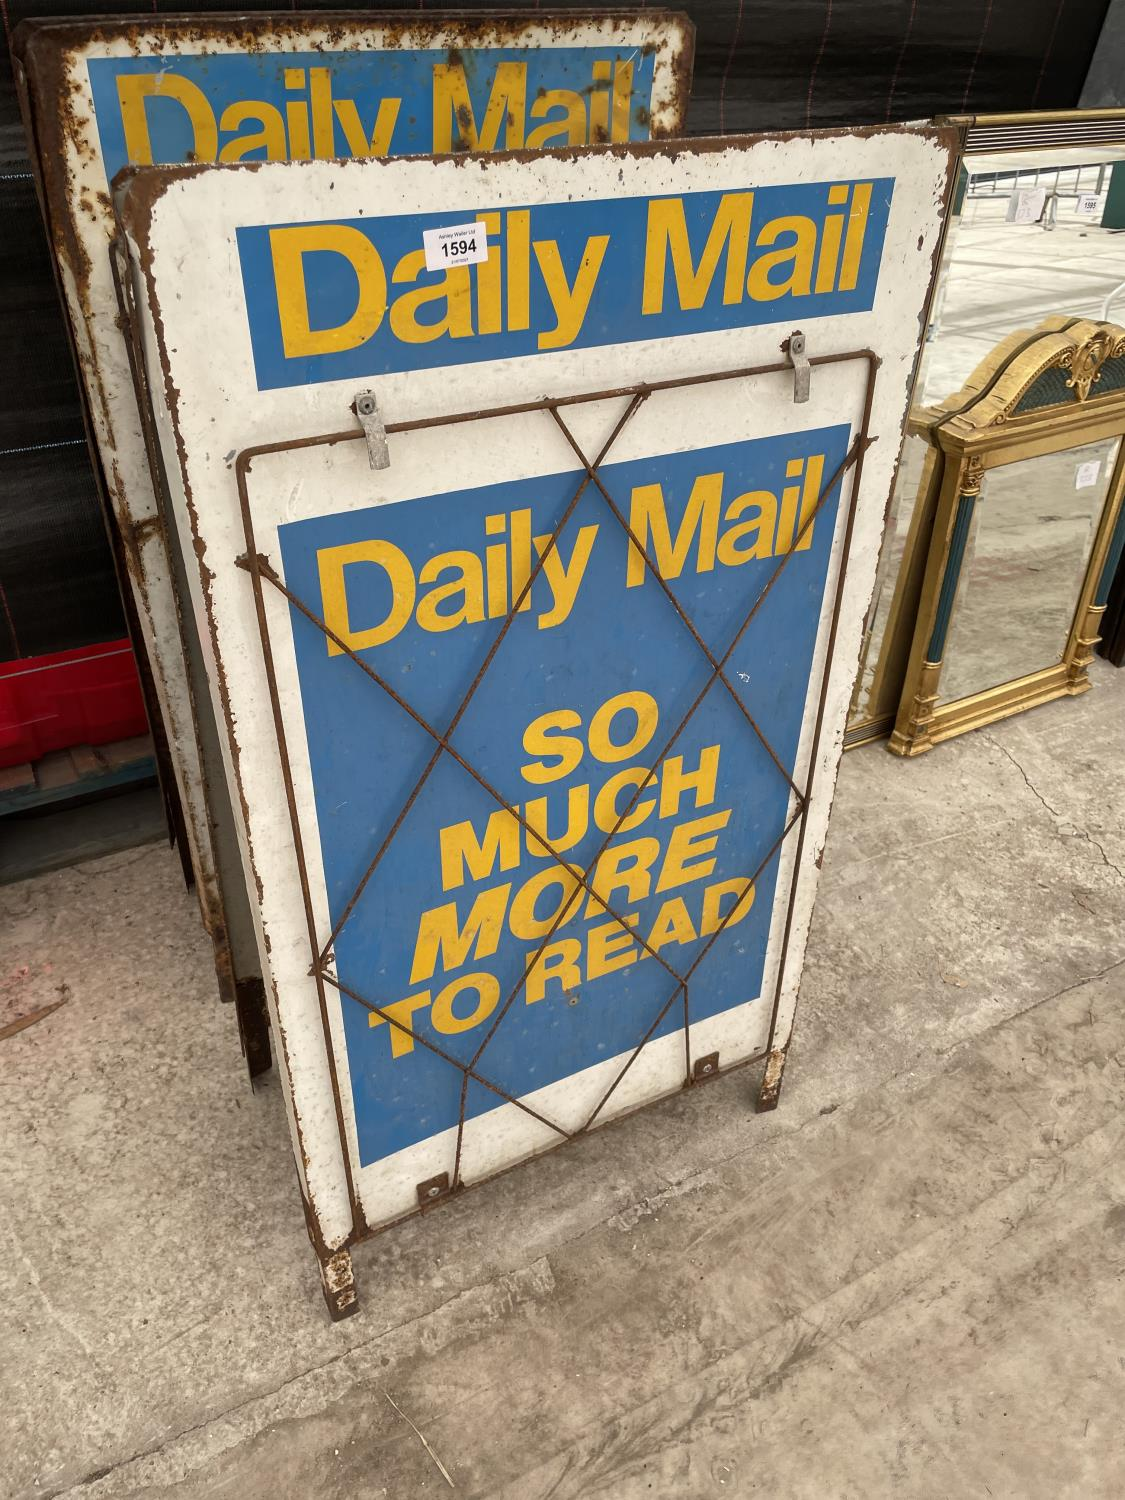 A PAIR OF DAILY MAIL A BOARD NEWS STANDS - Image 3 of 8